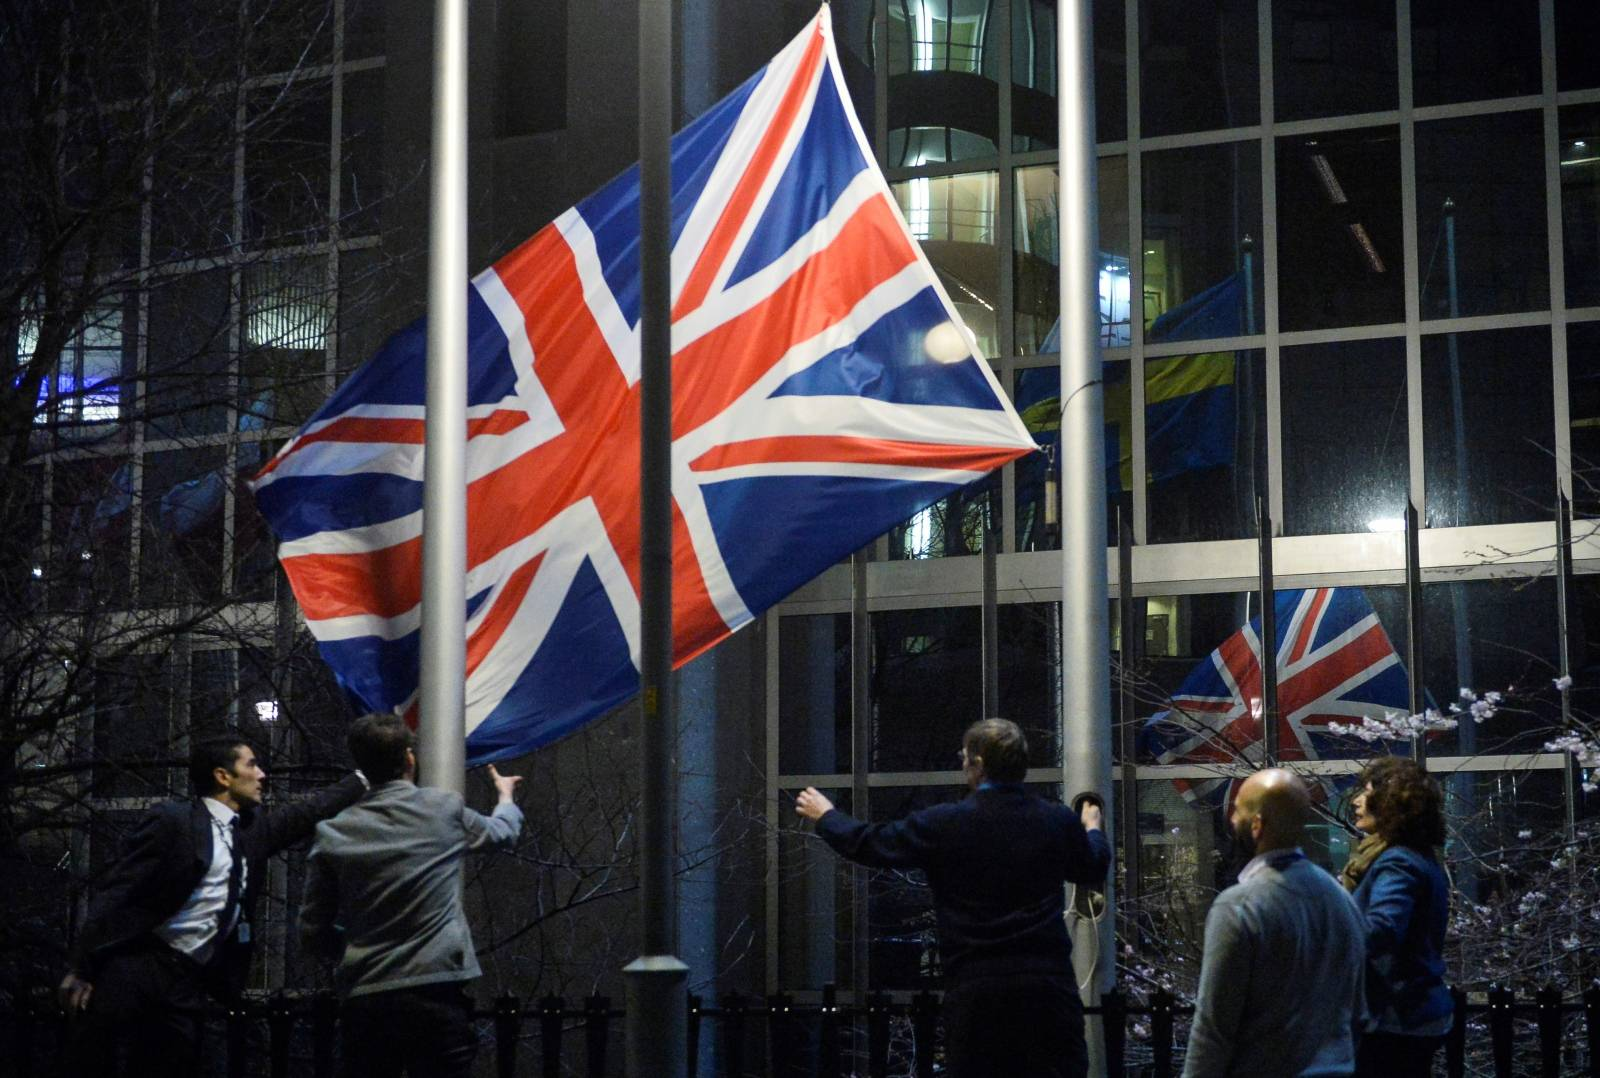 Workers remove the British flag outside the European Parliament building, as Britain leaves the European Union, in Brussels